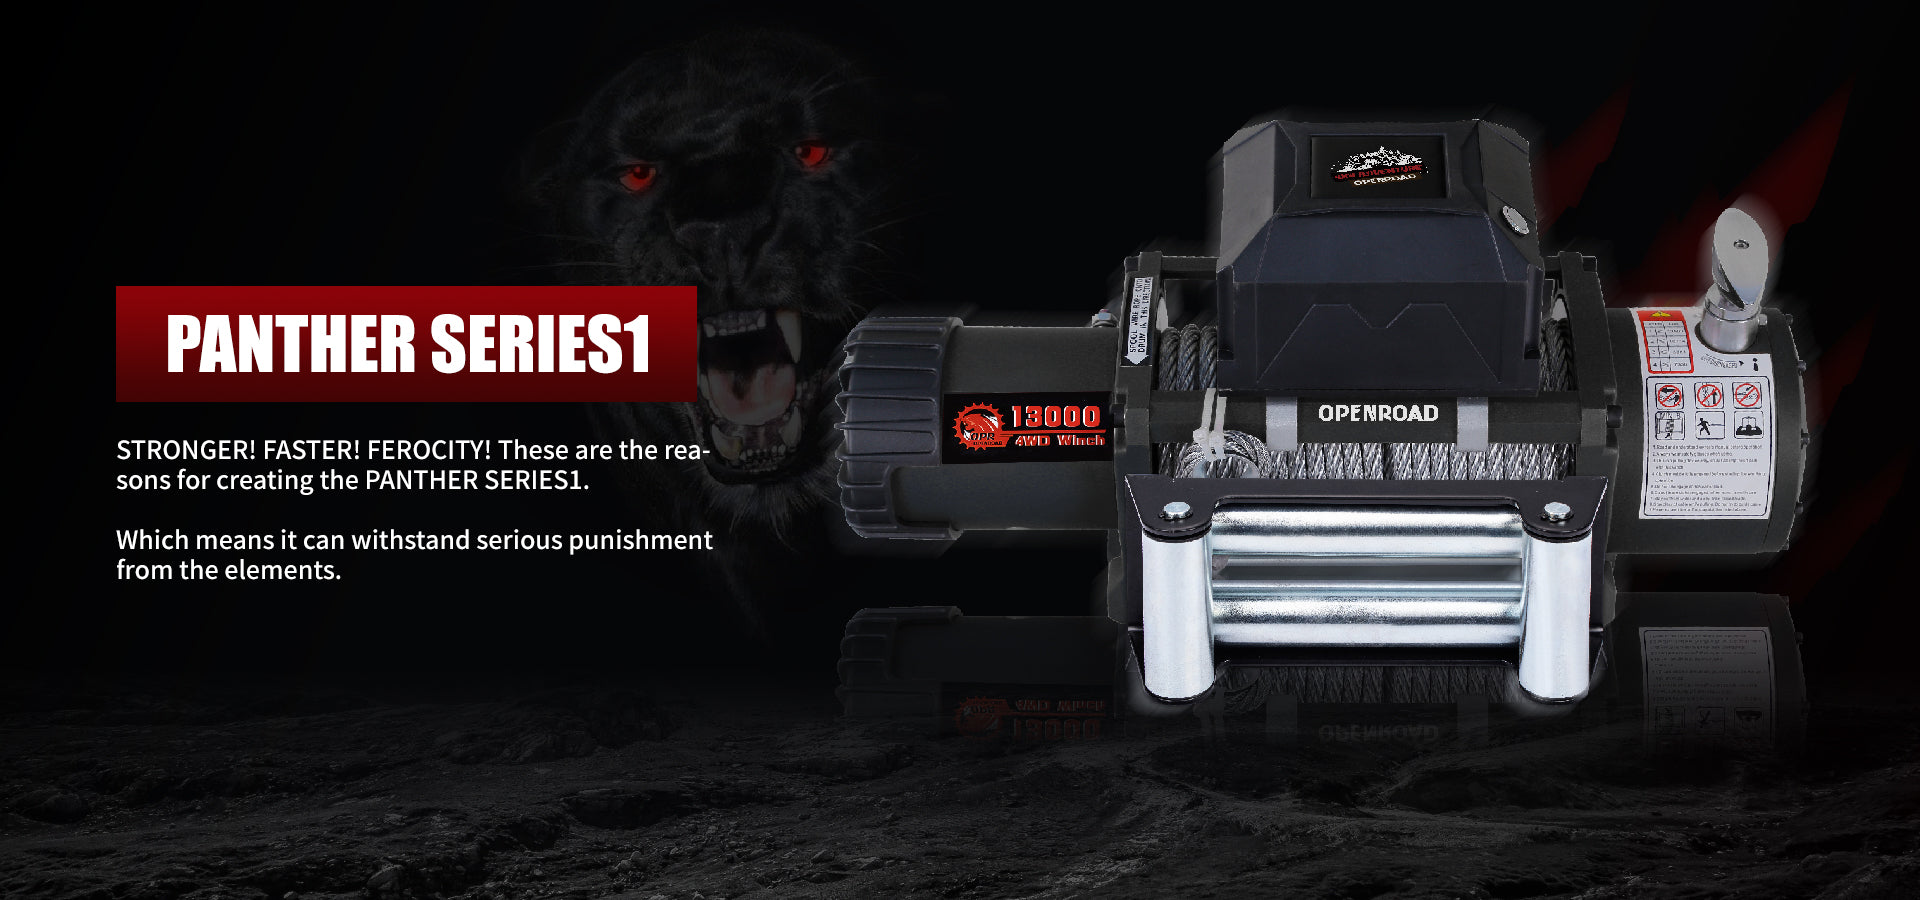 openroad-13000lb-winch-panther-series1-with-steel-cable